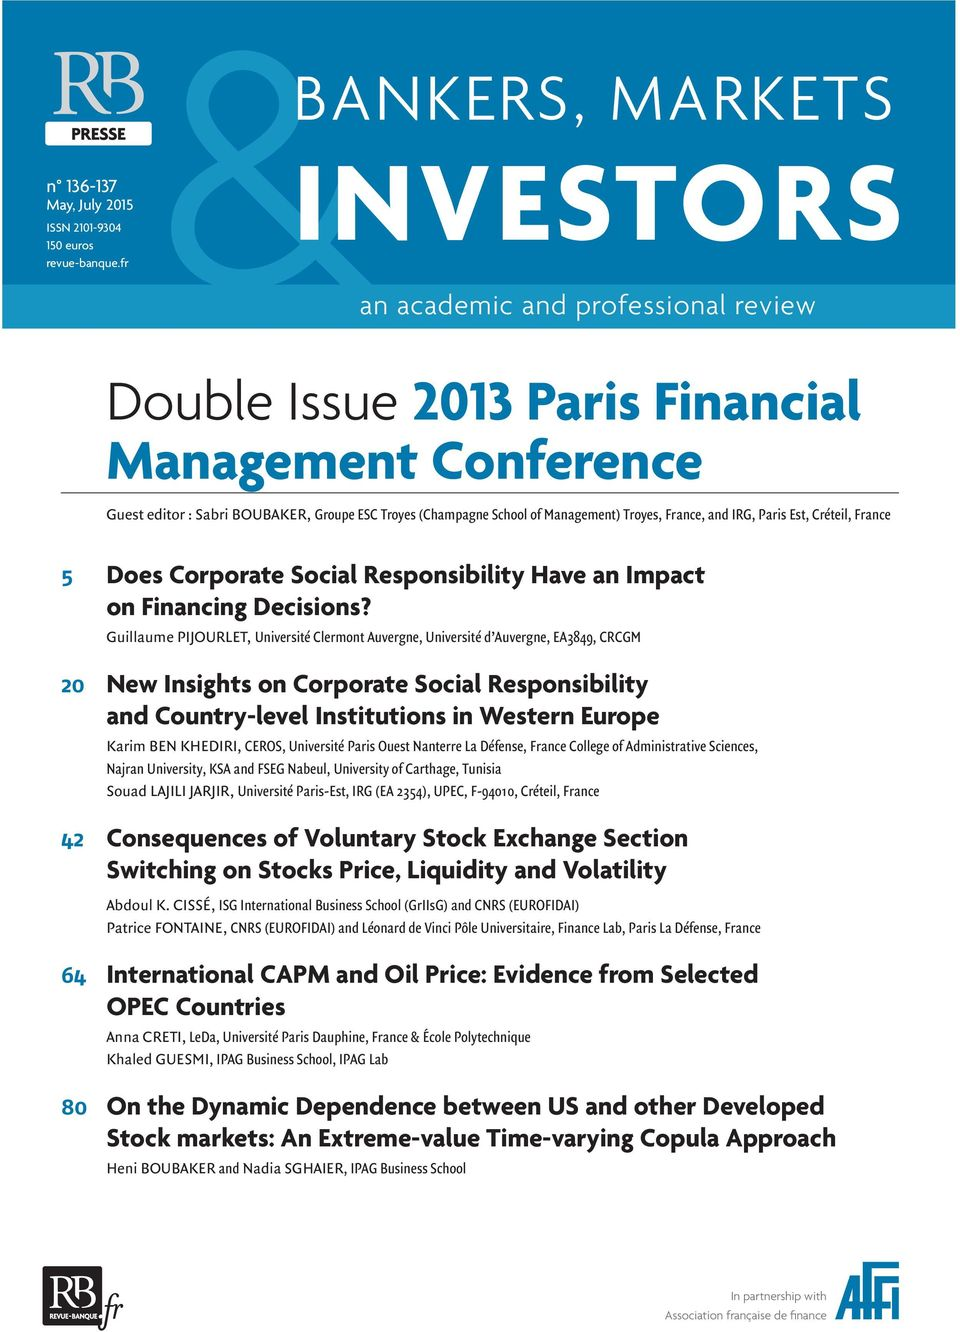 IRG, Paris Est, Créteil, France 5 Does Corporate Social Responsibility Have an Impact on Financing Decisions?